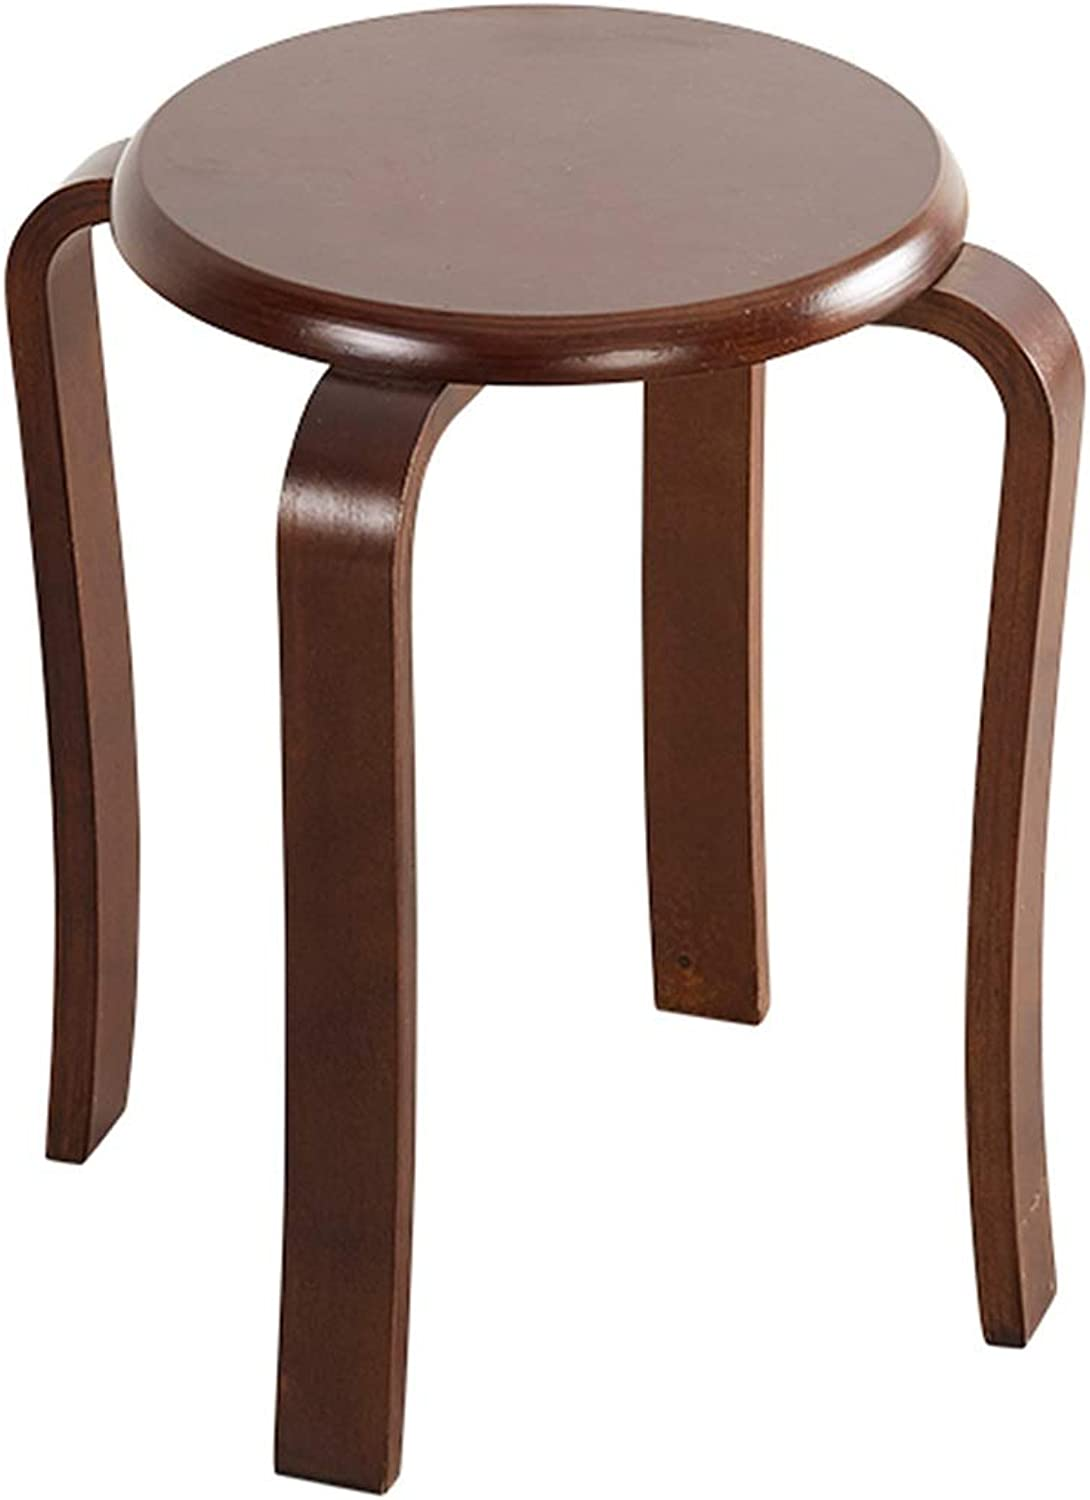 Solid Wood Round Stool Home Dining Table Stool Fashion Creative Modern Minimalist Adult Restaurant Small Chair